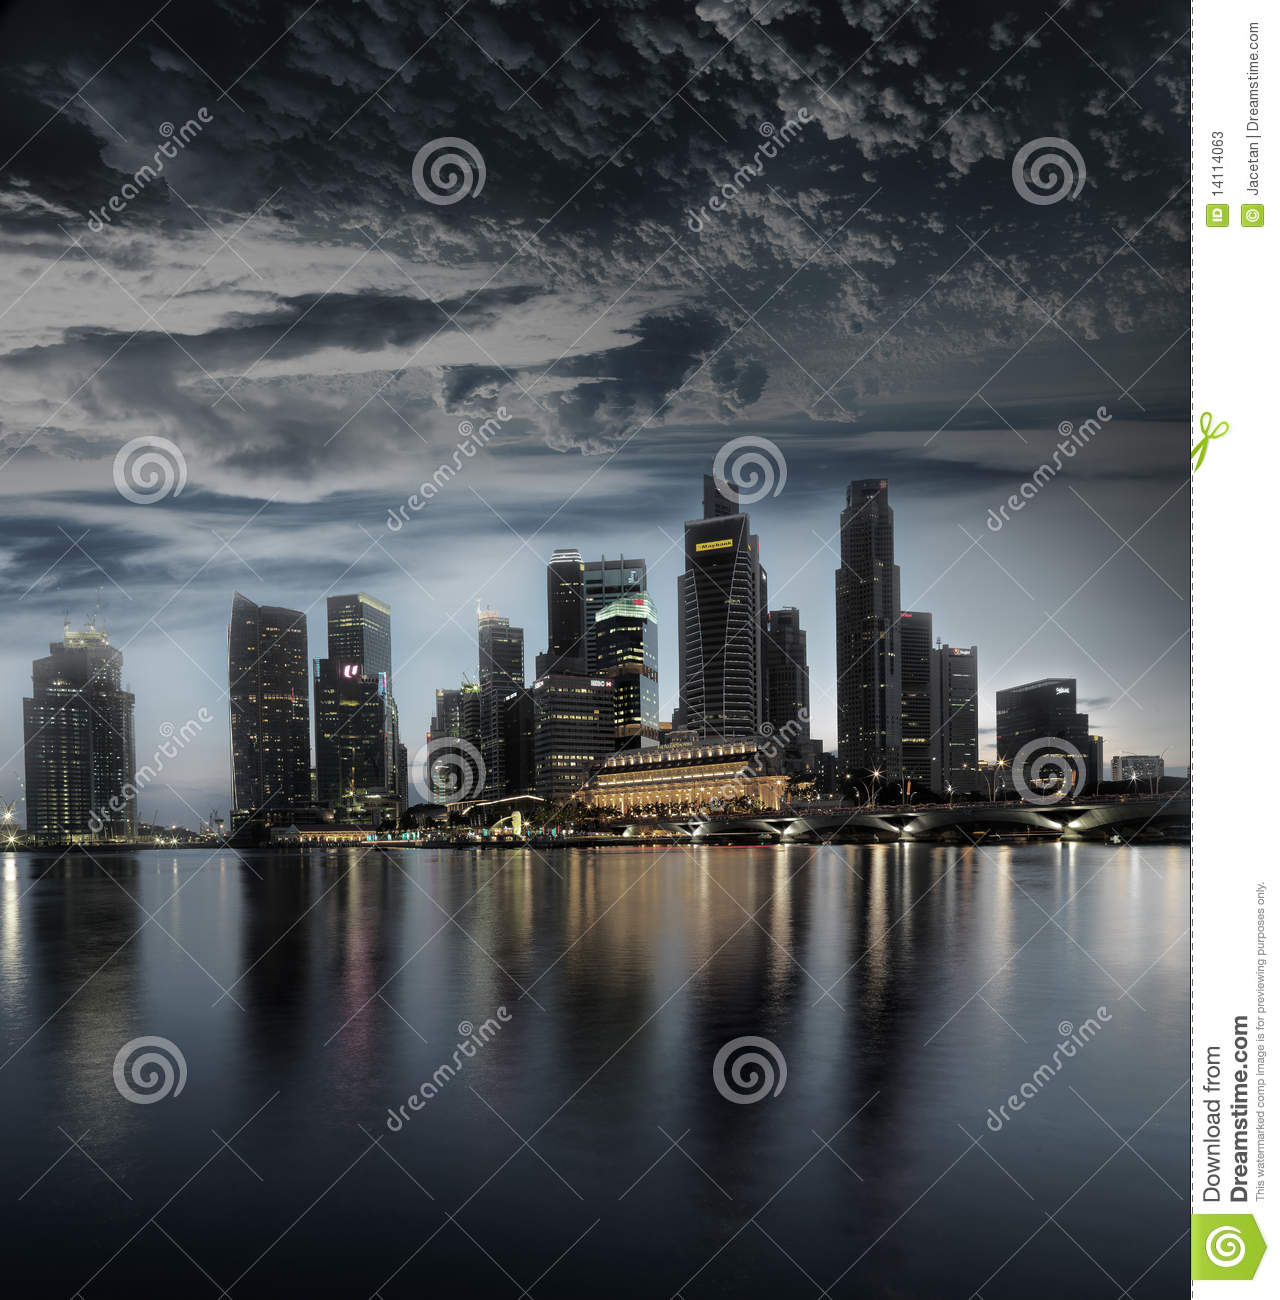 Extra large Stormy picture of Singapore landscape